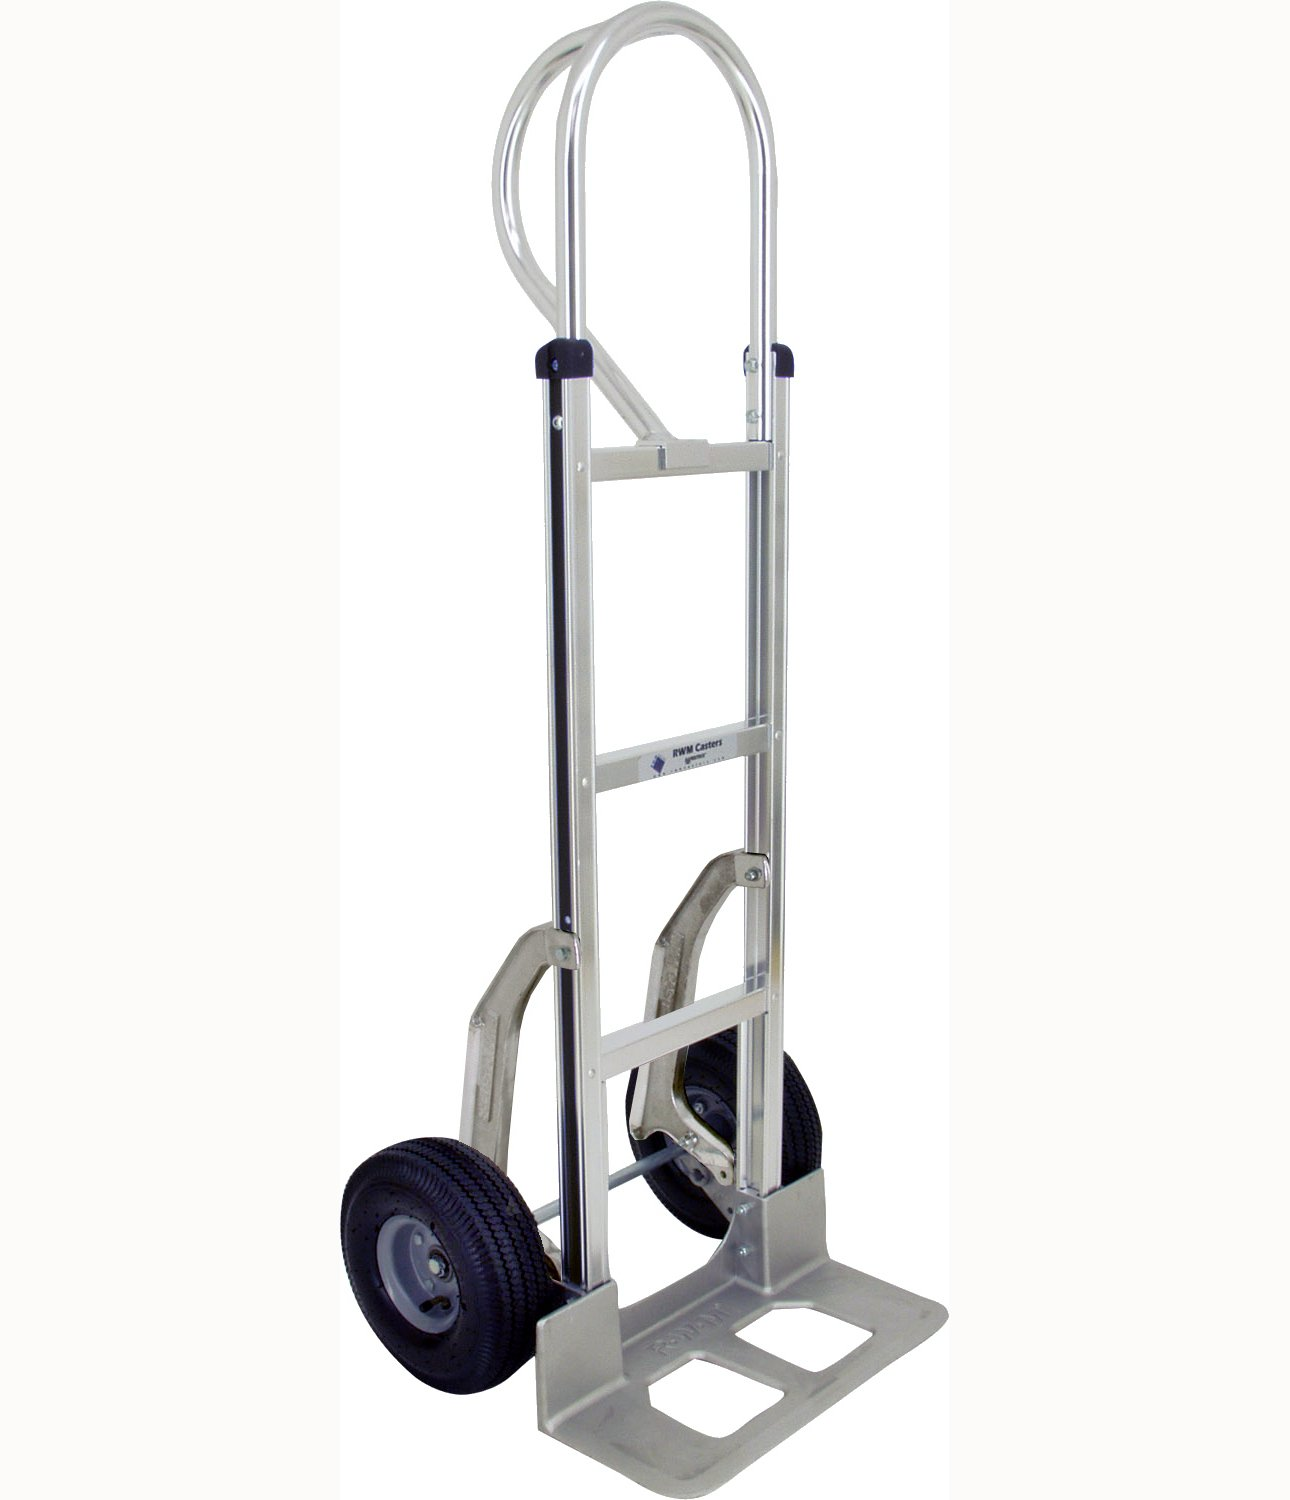 RWM Casters Aluminum Fixed Hand Truck with Dual Grip Vinyl Handle, 8'' Nylon Core/Rubber Wheels, 500 lbs Load Capacity, 48'' Height, 14'' Width x 7-1/2'' Depth